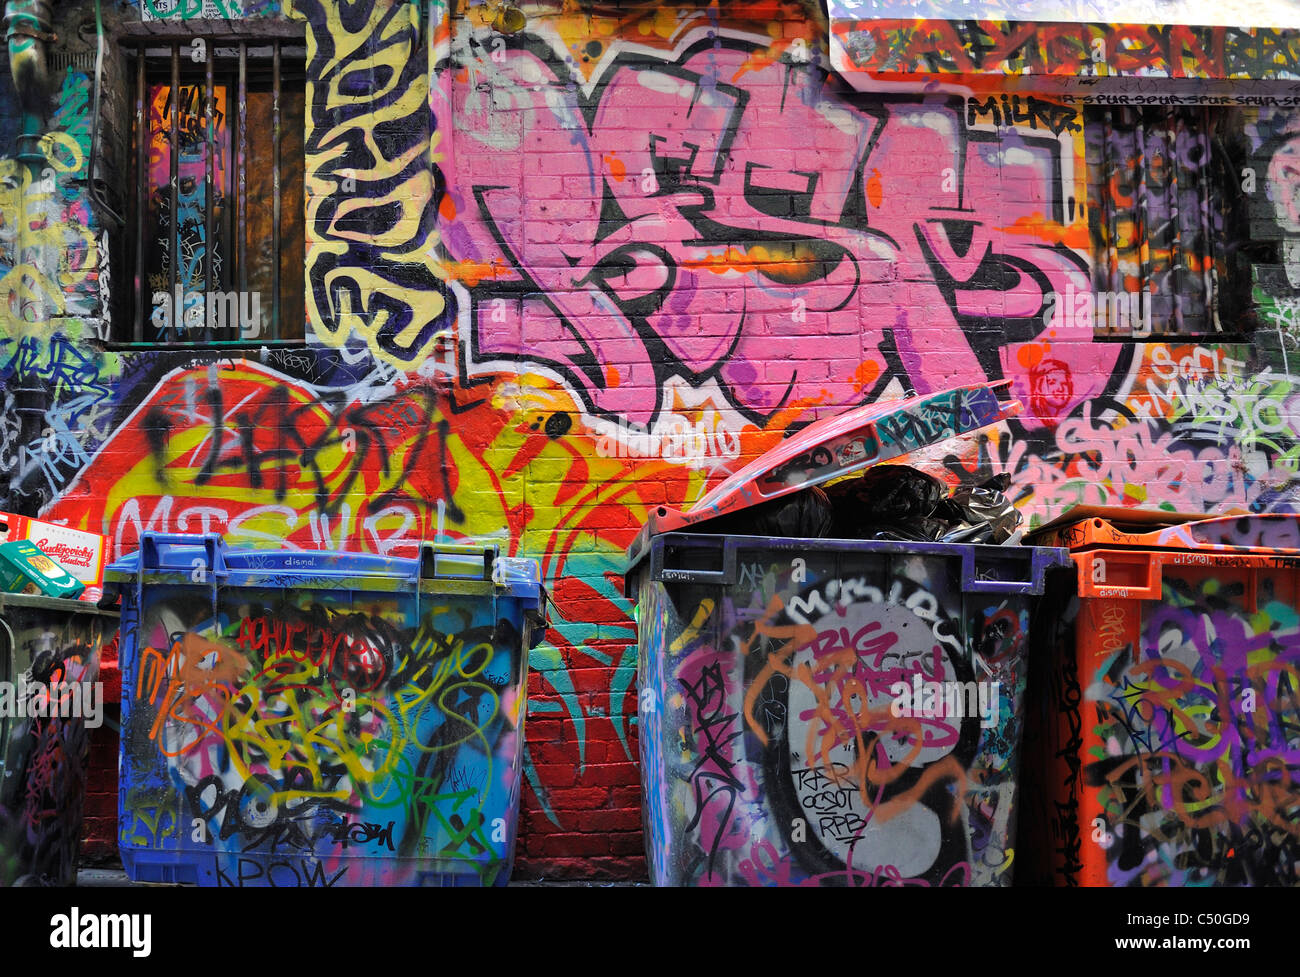 Graffiti-Kunst in Melbourne Central Business District Stockbild